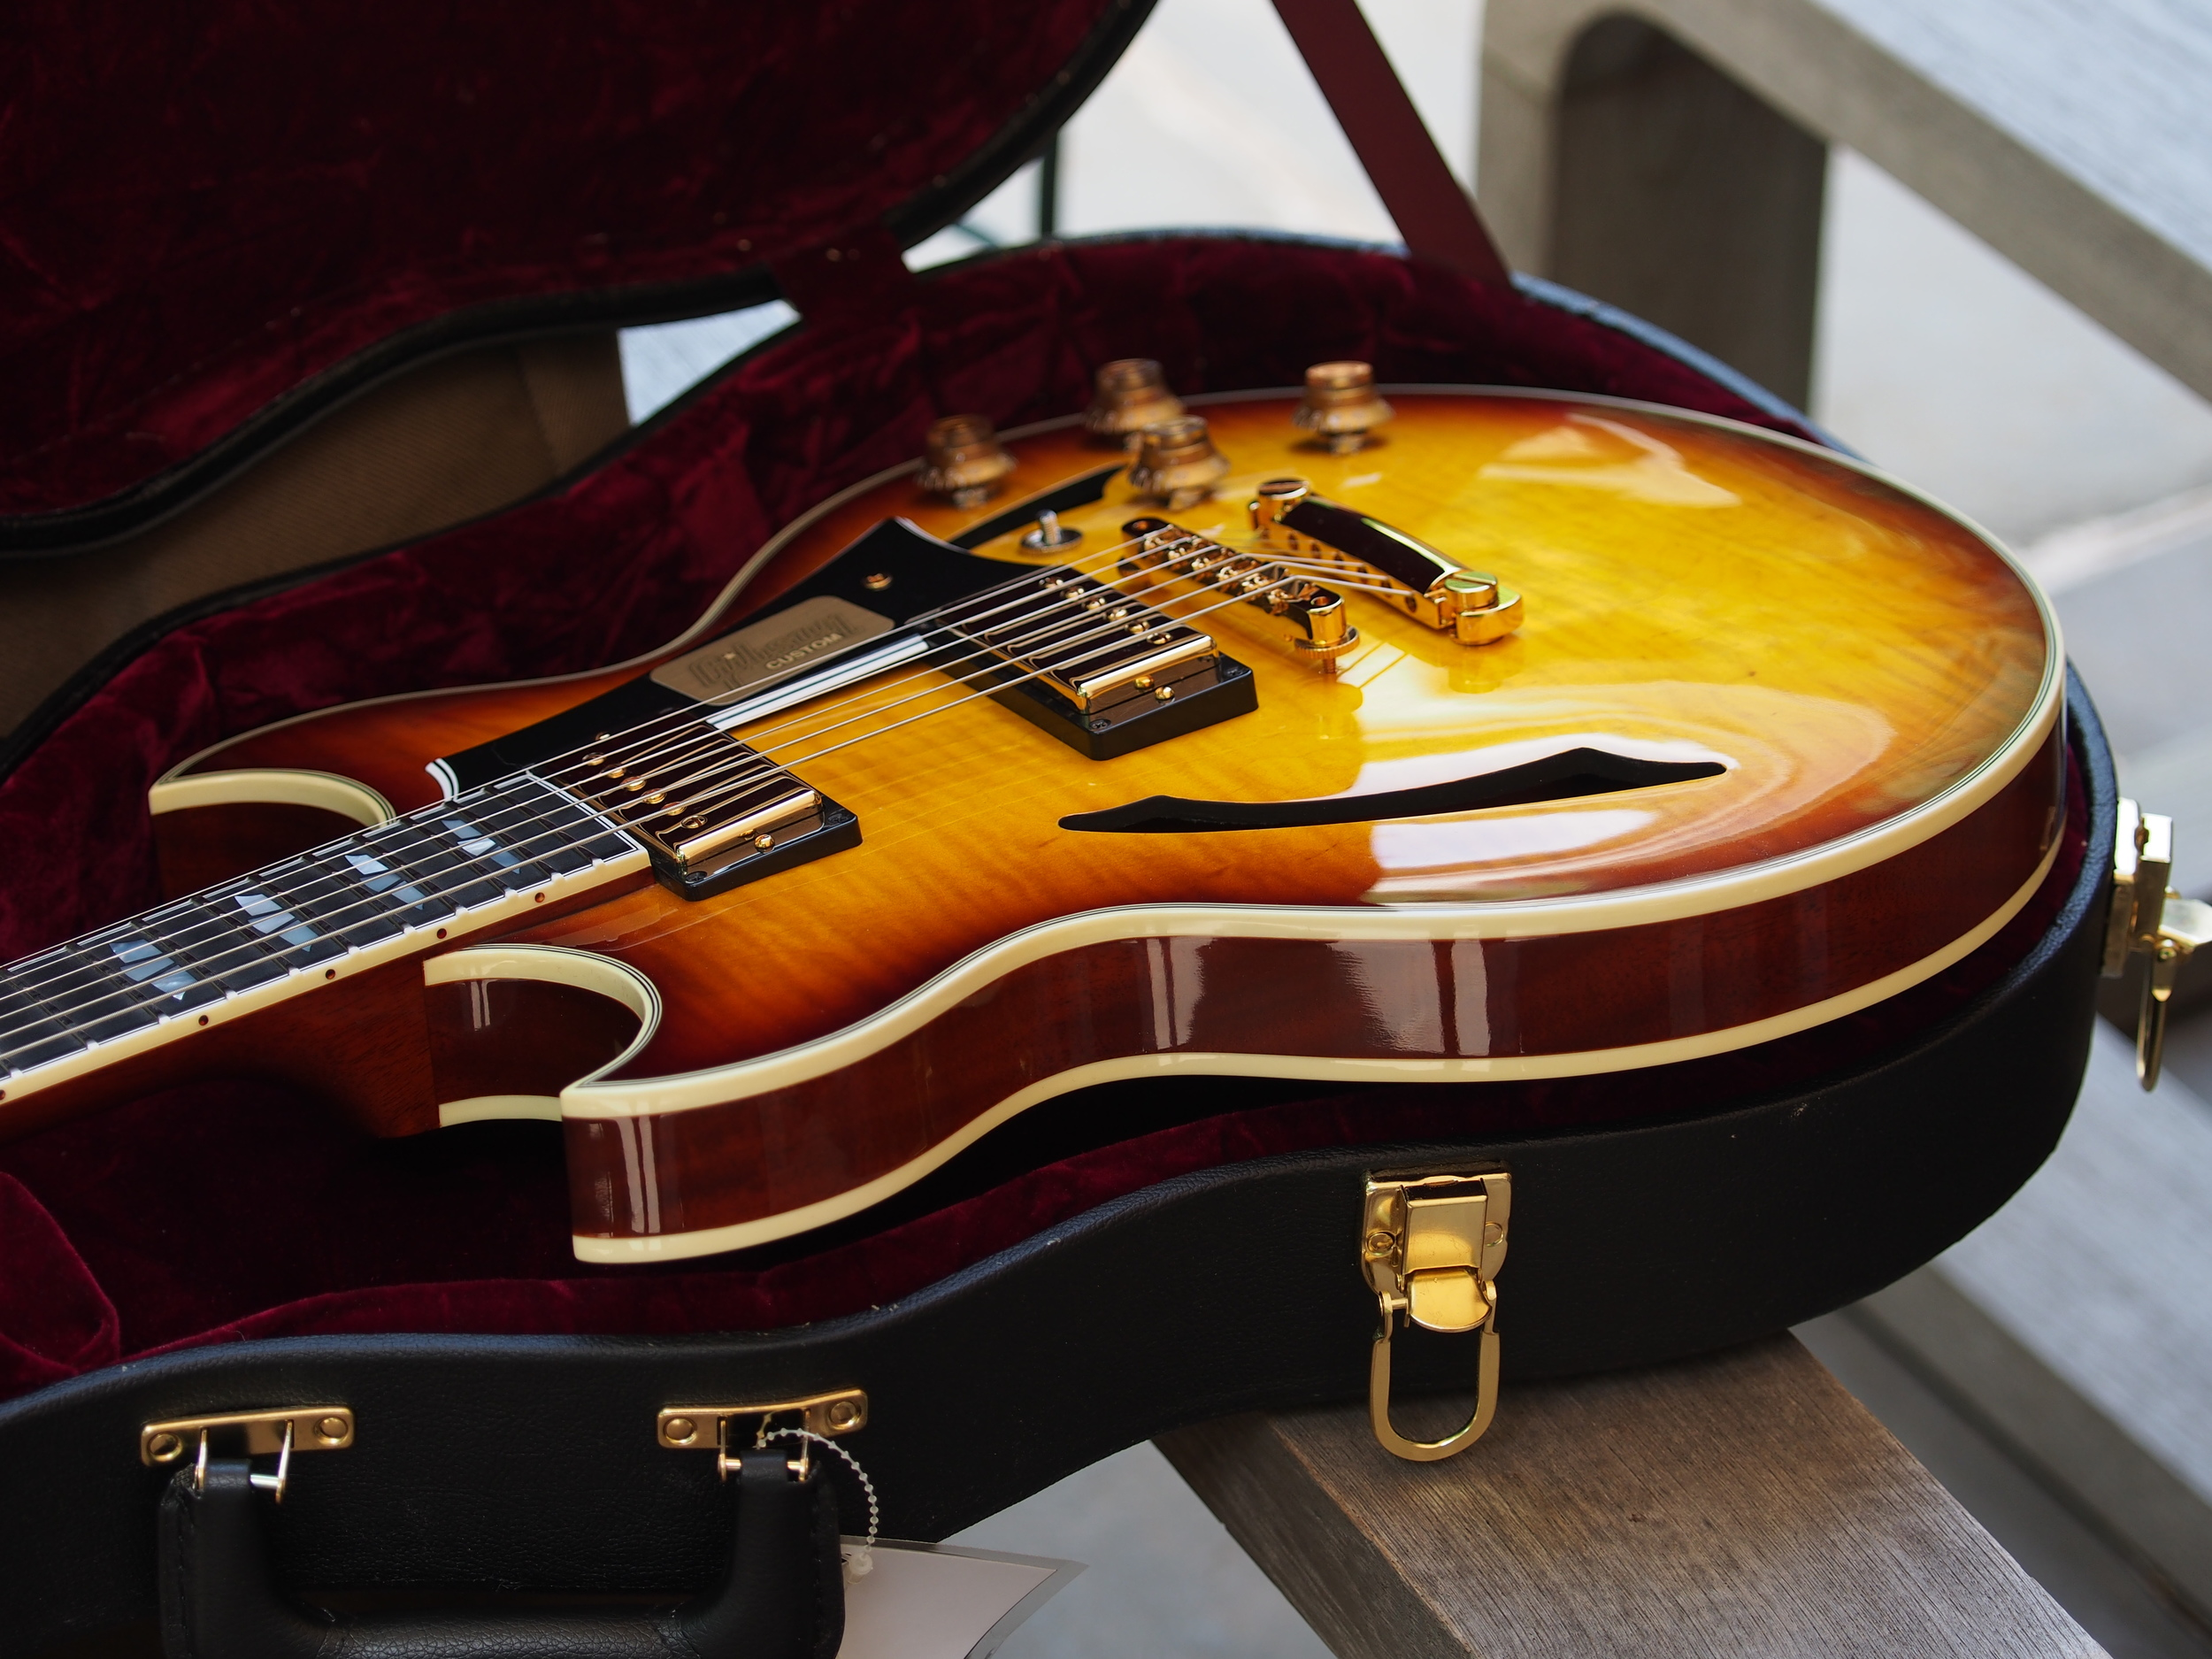 2014 Gibson Custom Shop Johnny A. Semi-Hollow Thin Body Archtop- the last one manufactured- sold.